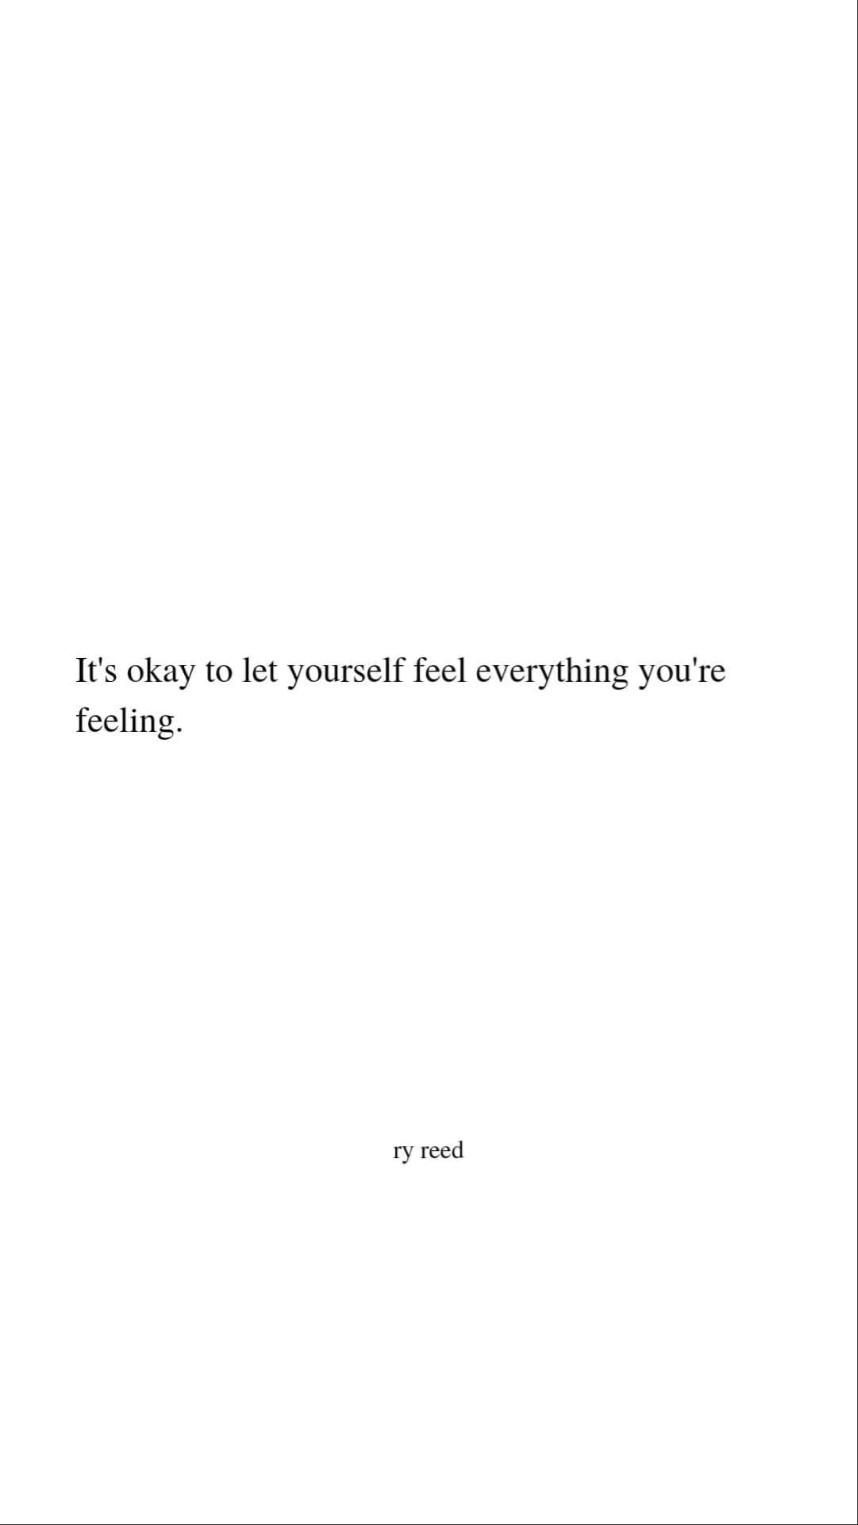 it's okay to feel everything you're feeling